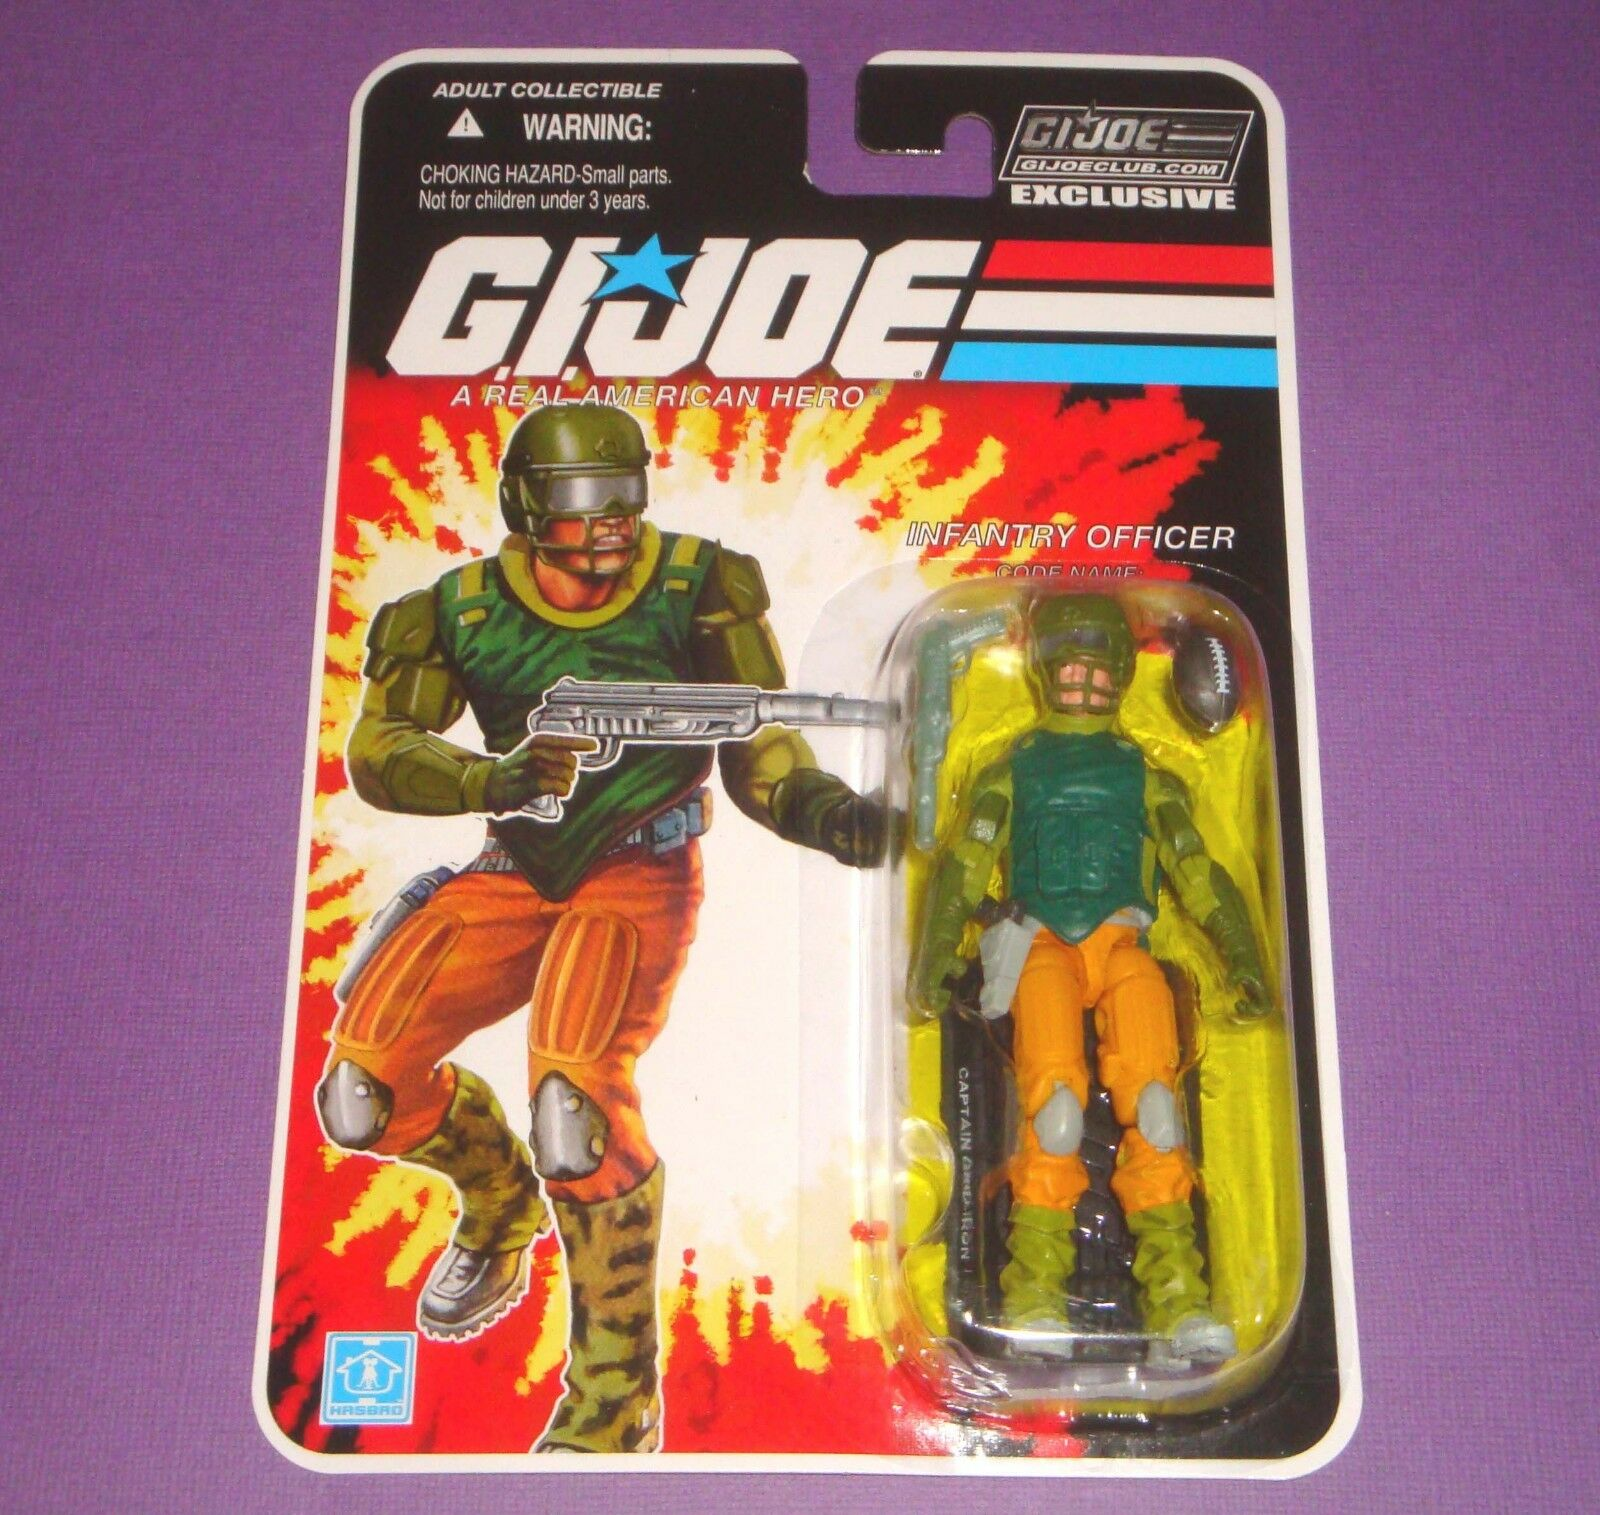 Captain Grid Iron - FSS 8.0 - Sealed New MOC - GIJOE Figure